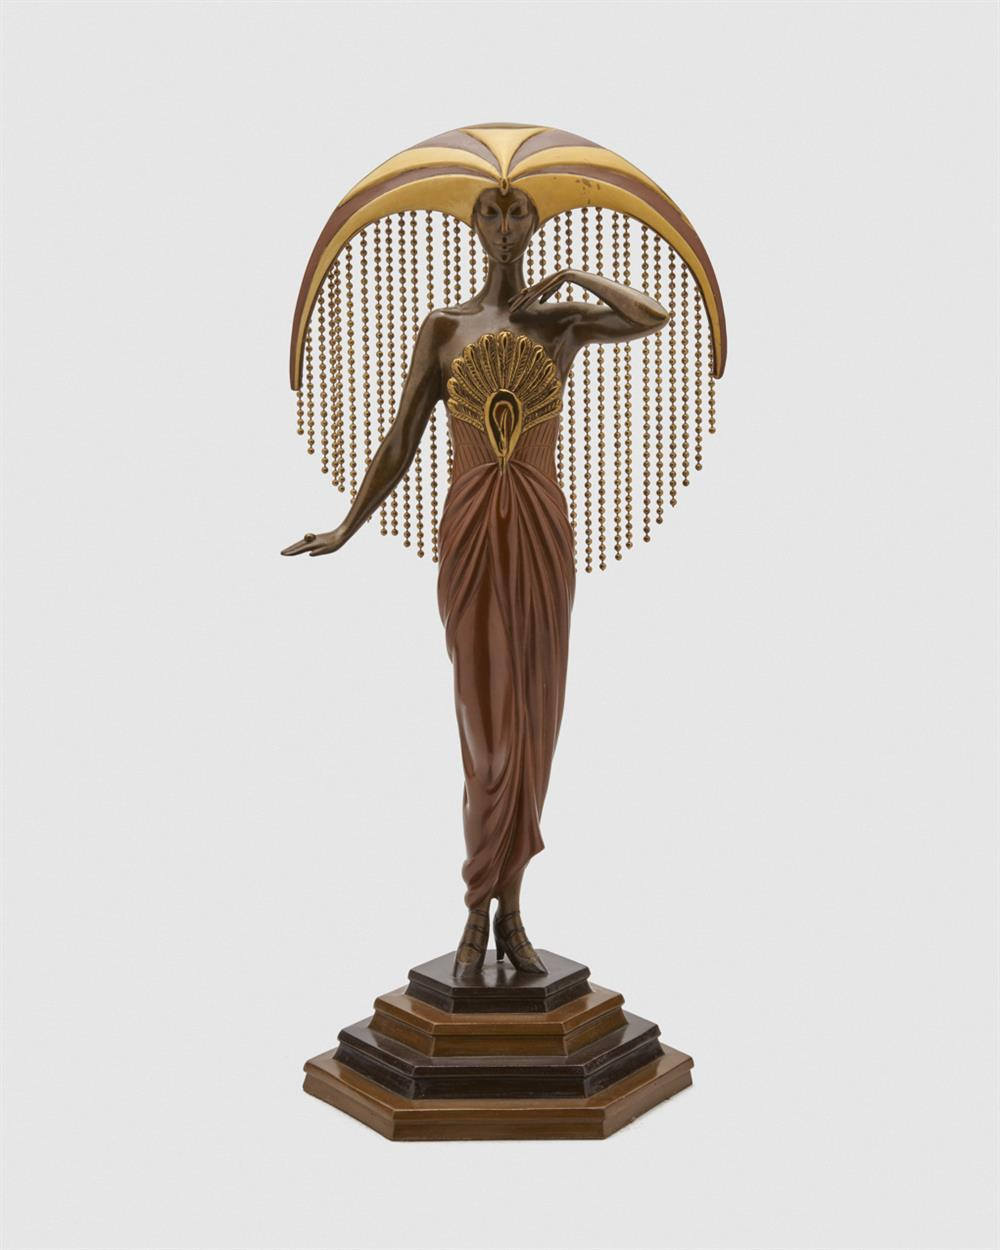 ERTÉ , (French, 1892-1990), Le Soleil, bronze, height: 17 3/4 in.